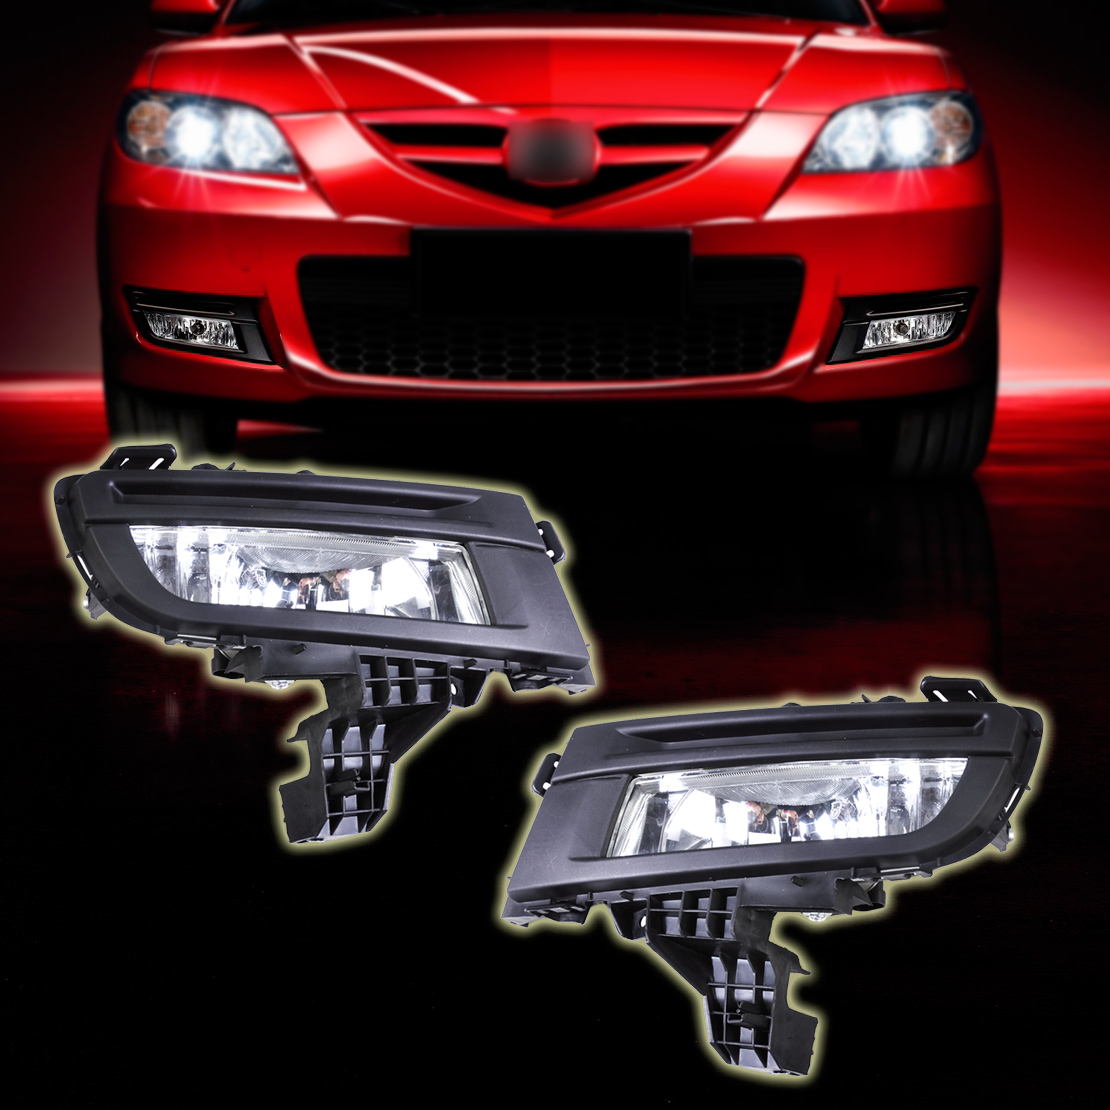 beler High Quality ABS Pair Front Fog Light Lamp 9006 12V 51W for Mazda 3 2007 2008 2009 Replacement Without wiring harnessbeler High Quality ABS Pair Front Fog Light Lamp 9006 12V 51W for Mazda 3 2007 2008 2009 Replacement Without wiring harness